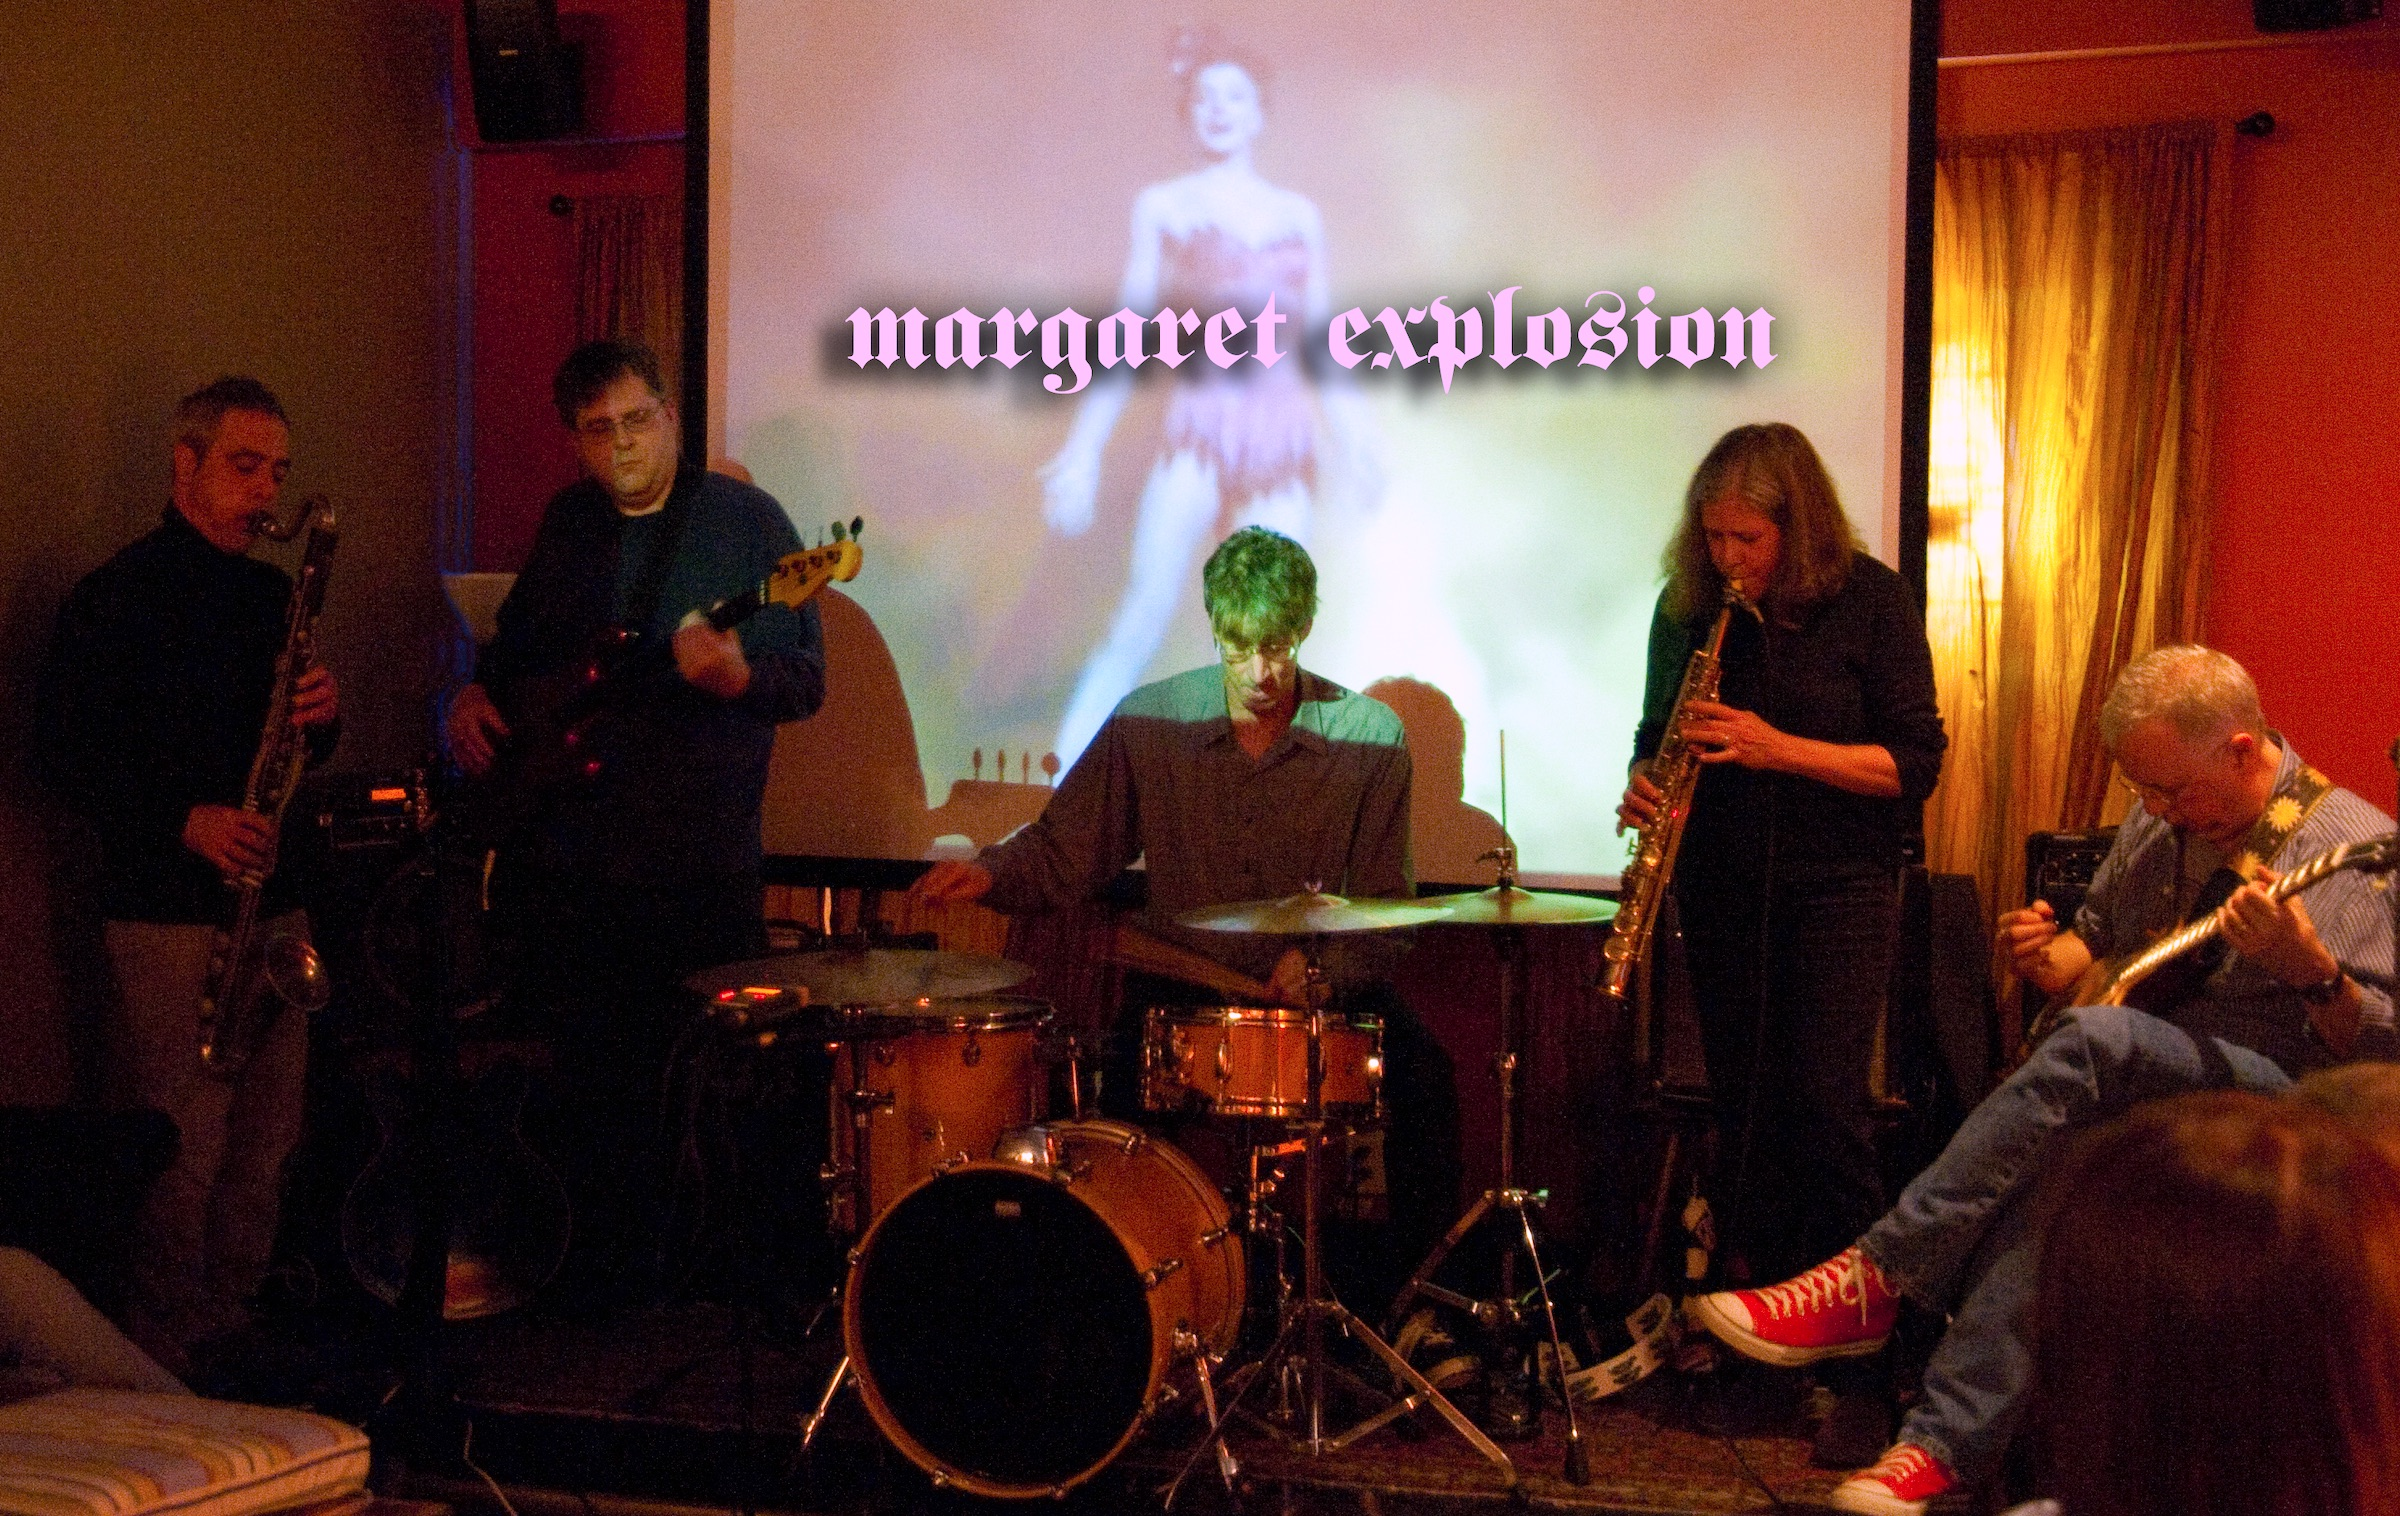 Margaret Explosion playing upstairs at Abilene with Jack Schaefer on bass clarinet. Photo by Brian Peterson.